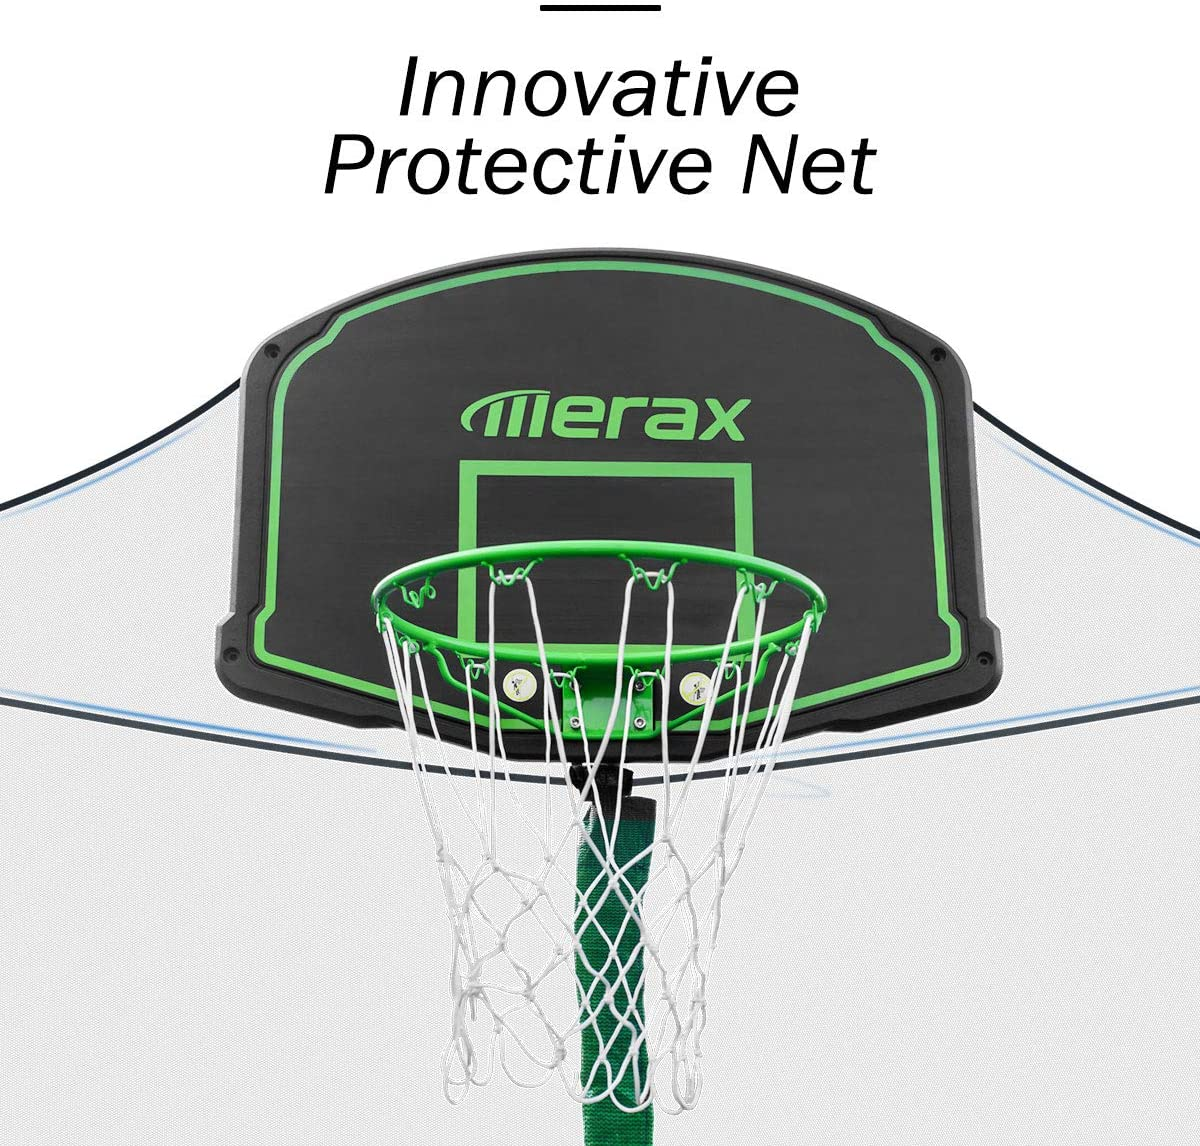 This is an image of Merax 14 FT Round Trampoline with Safety Enclosure with innovative protective net.